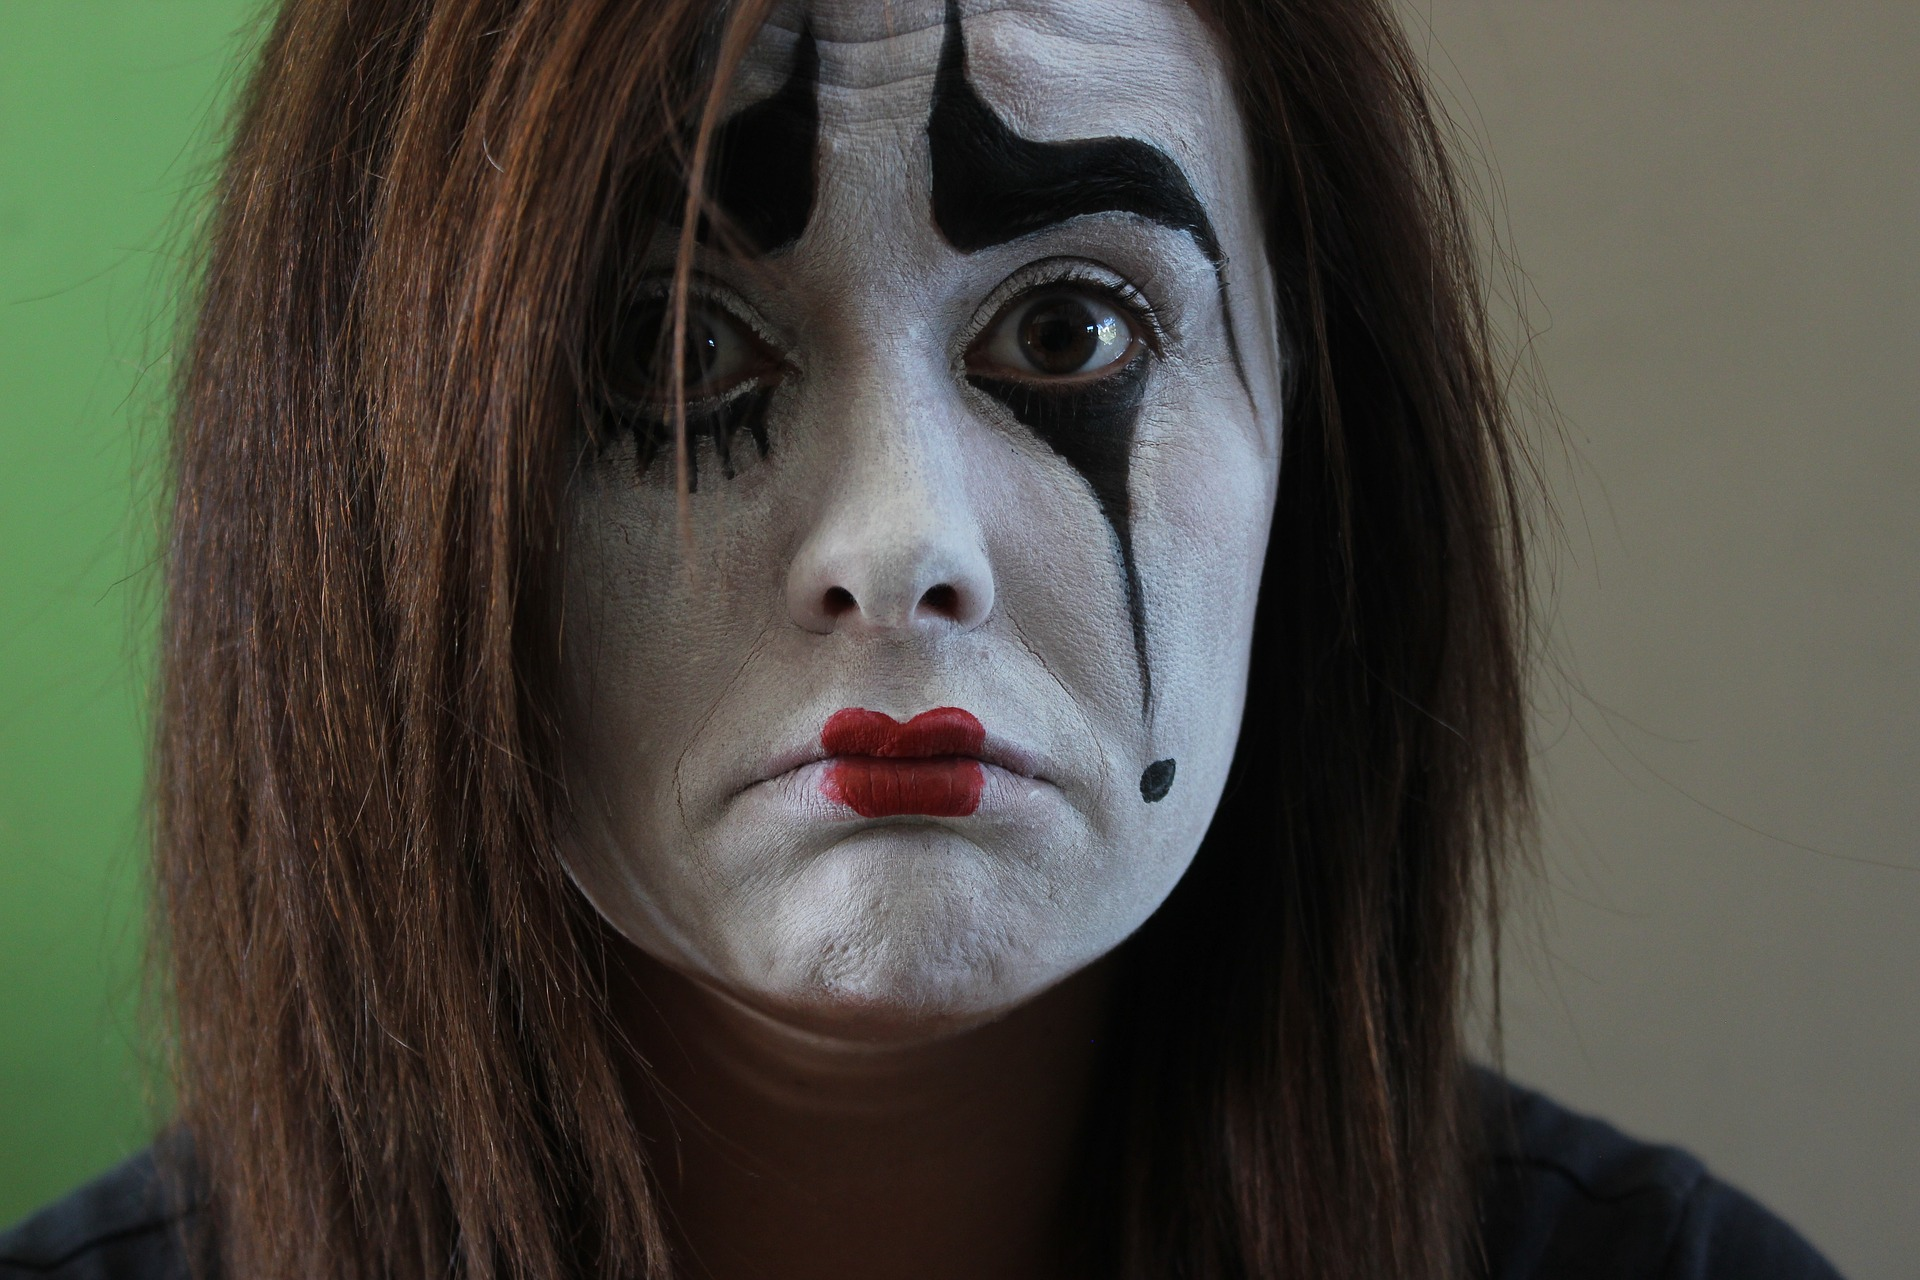 image issues, sad clown. sad mime. body issues